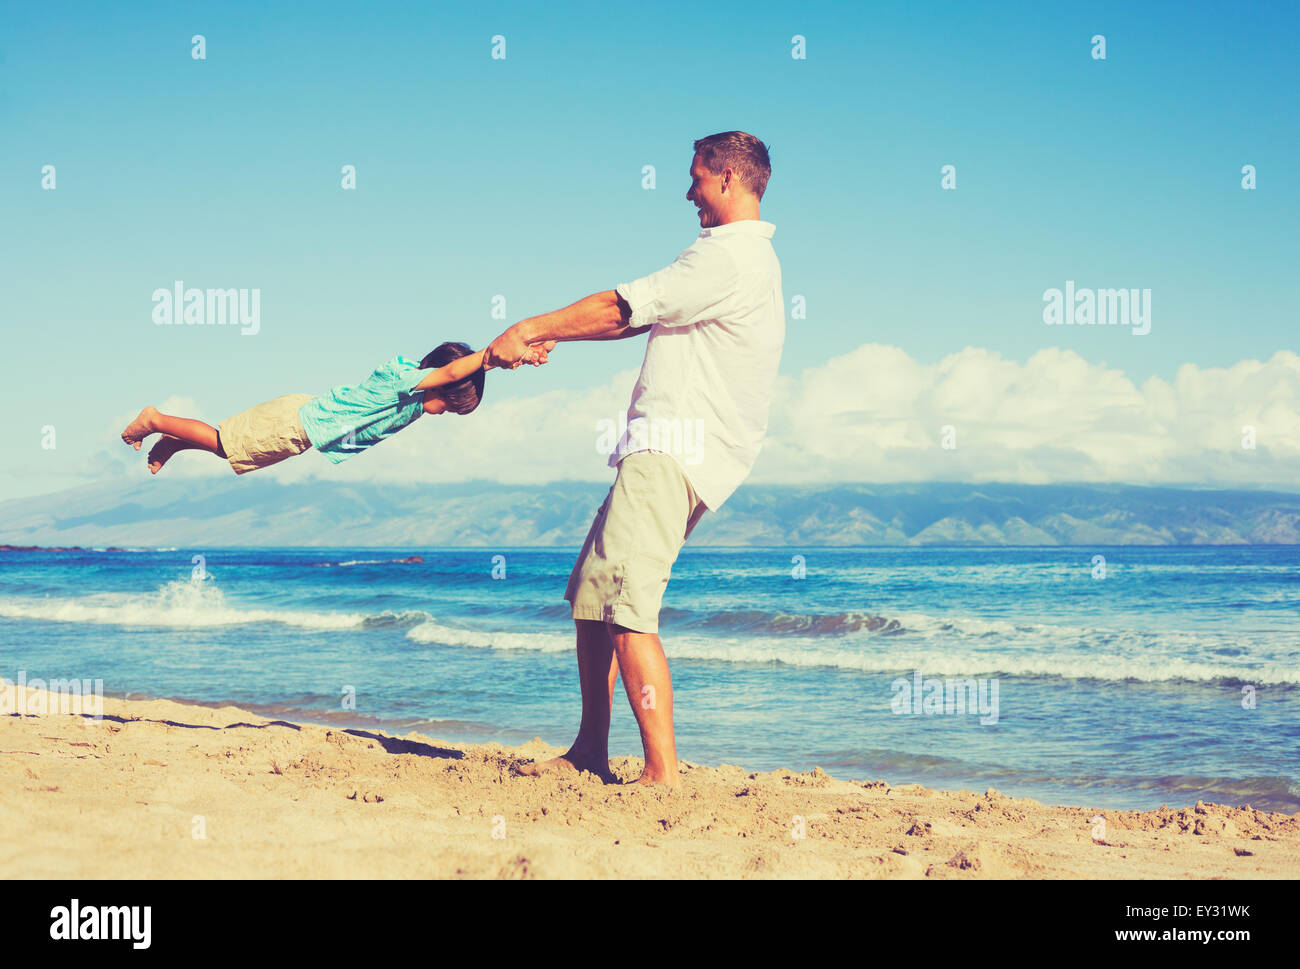 Happy father and son playing together at the beach. Fun vacation summer lifestyle. - Stock Image